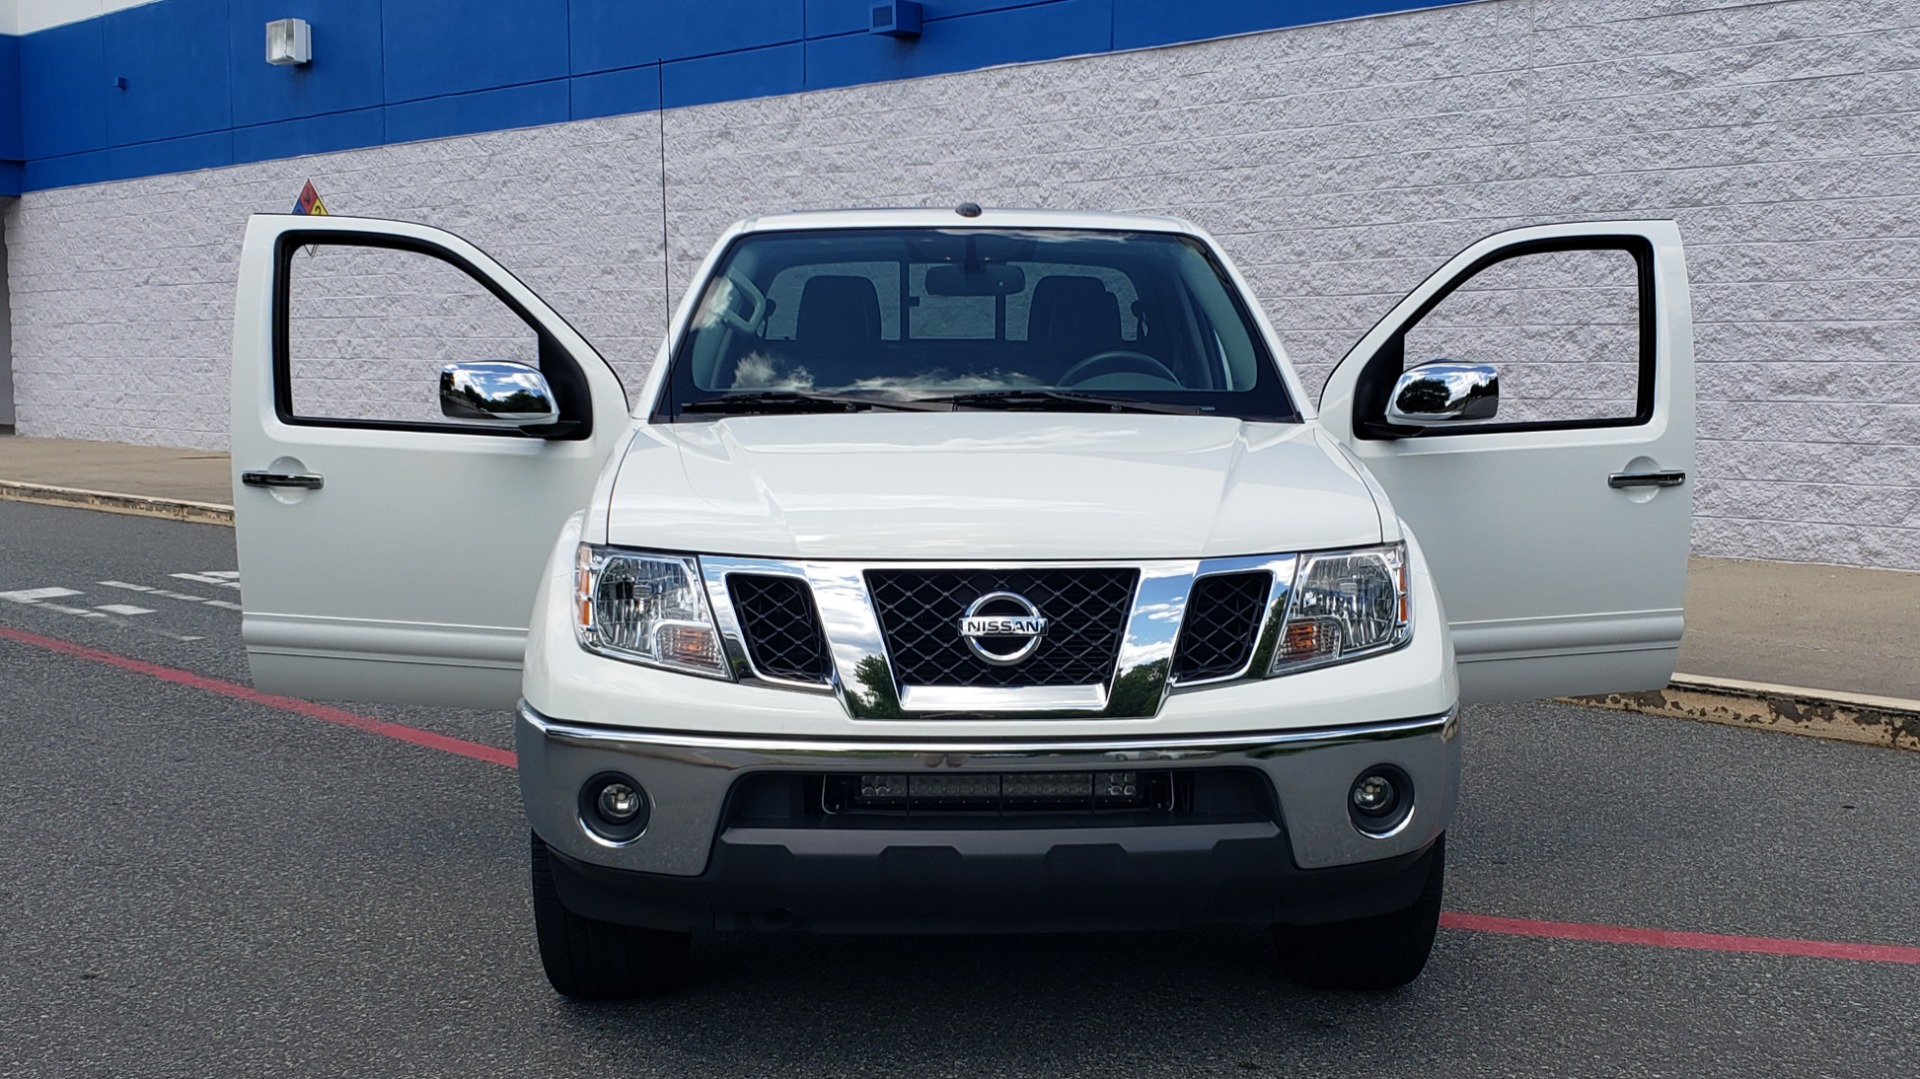 Used 2019 Nissan FRONTIER SL CREW CAB / 4X4 / NAV / SUNROOF / ROCKFORD FOSGATE / LOADED for sale $31,495 at Formula Imports in Charlotte NC 28227 20